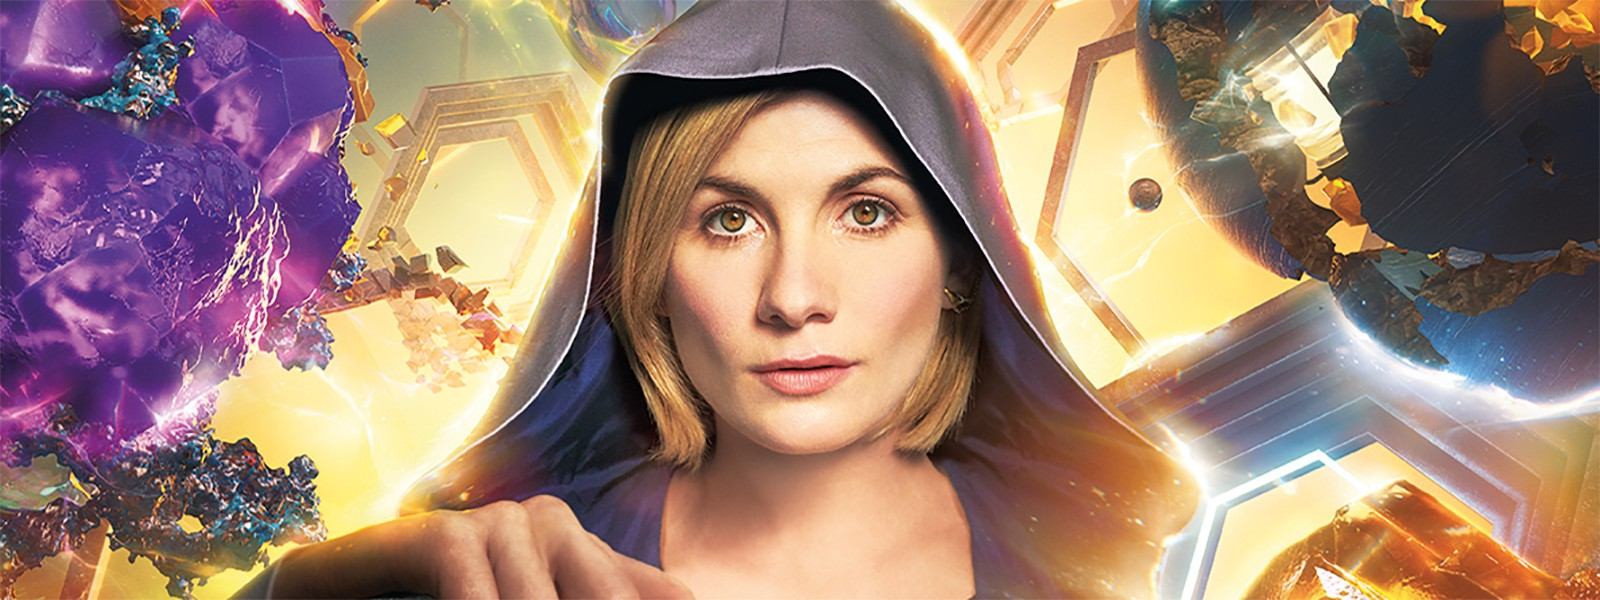 Image for Doctor Who Live Event